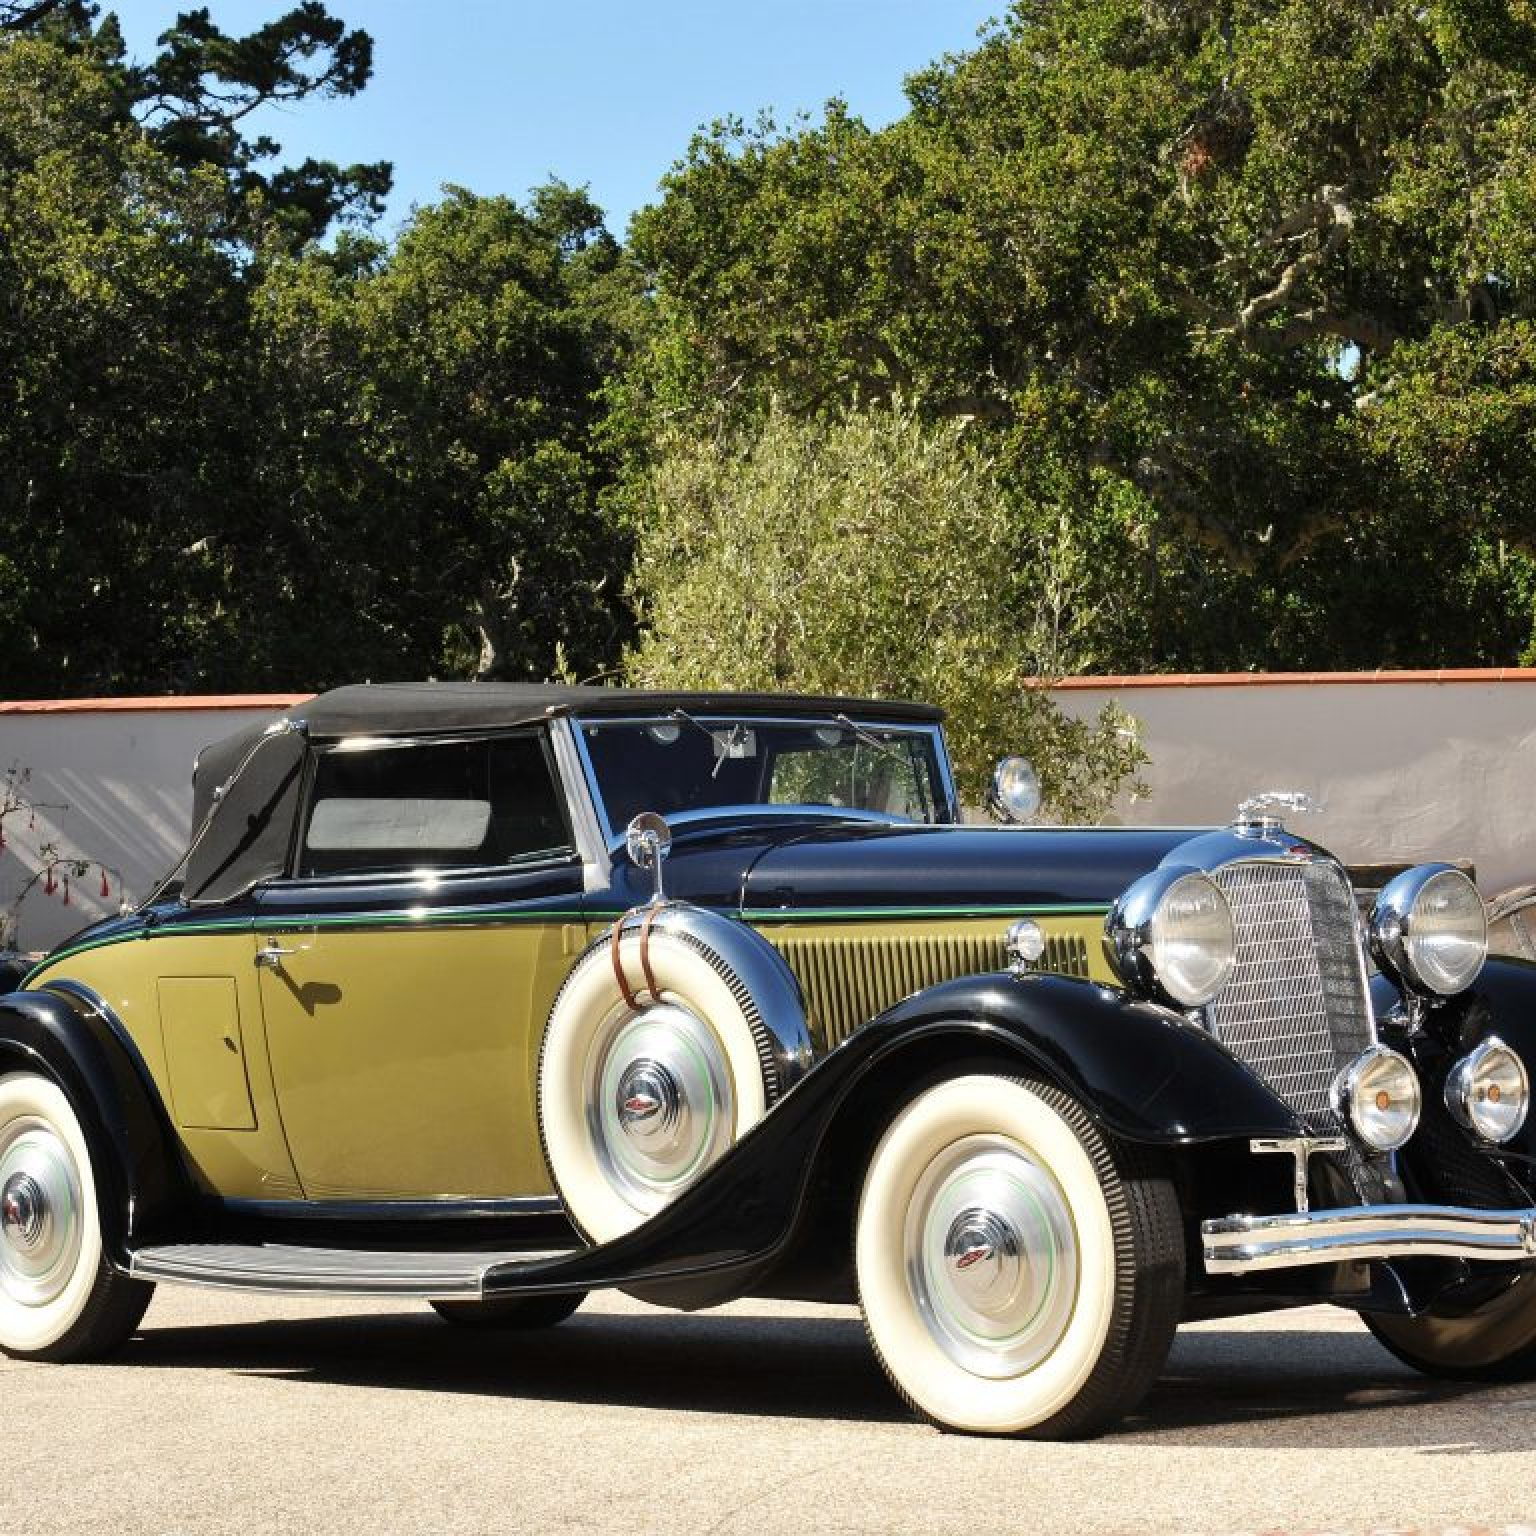 1933 Lincoln Model KA Convertible Roadster by Murray